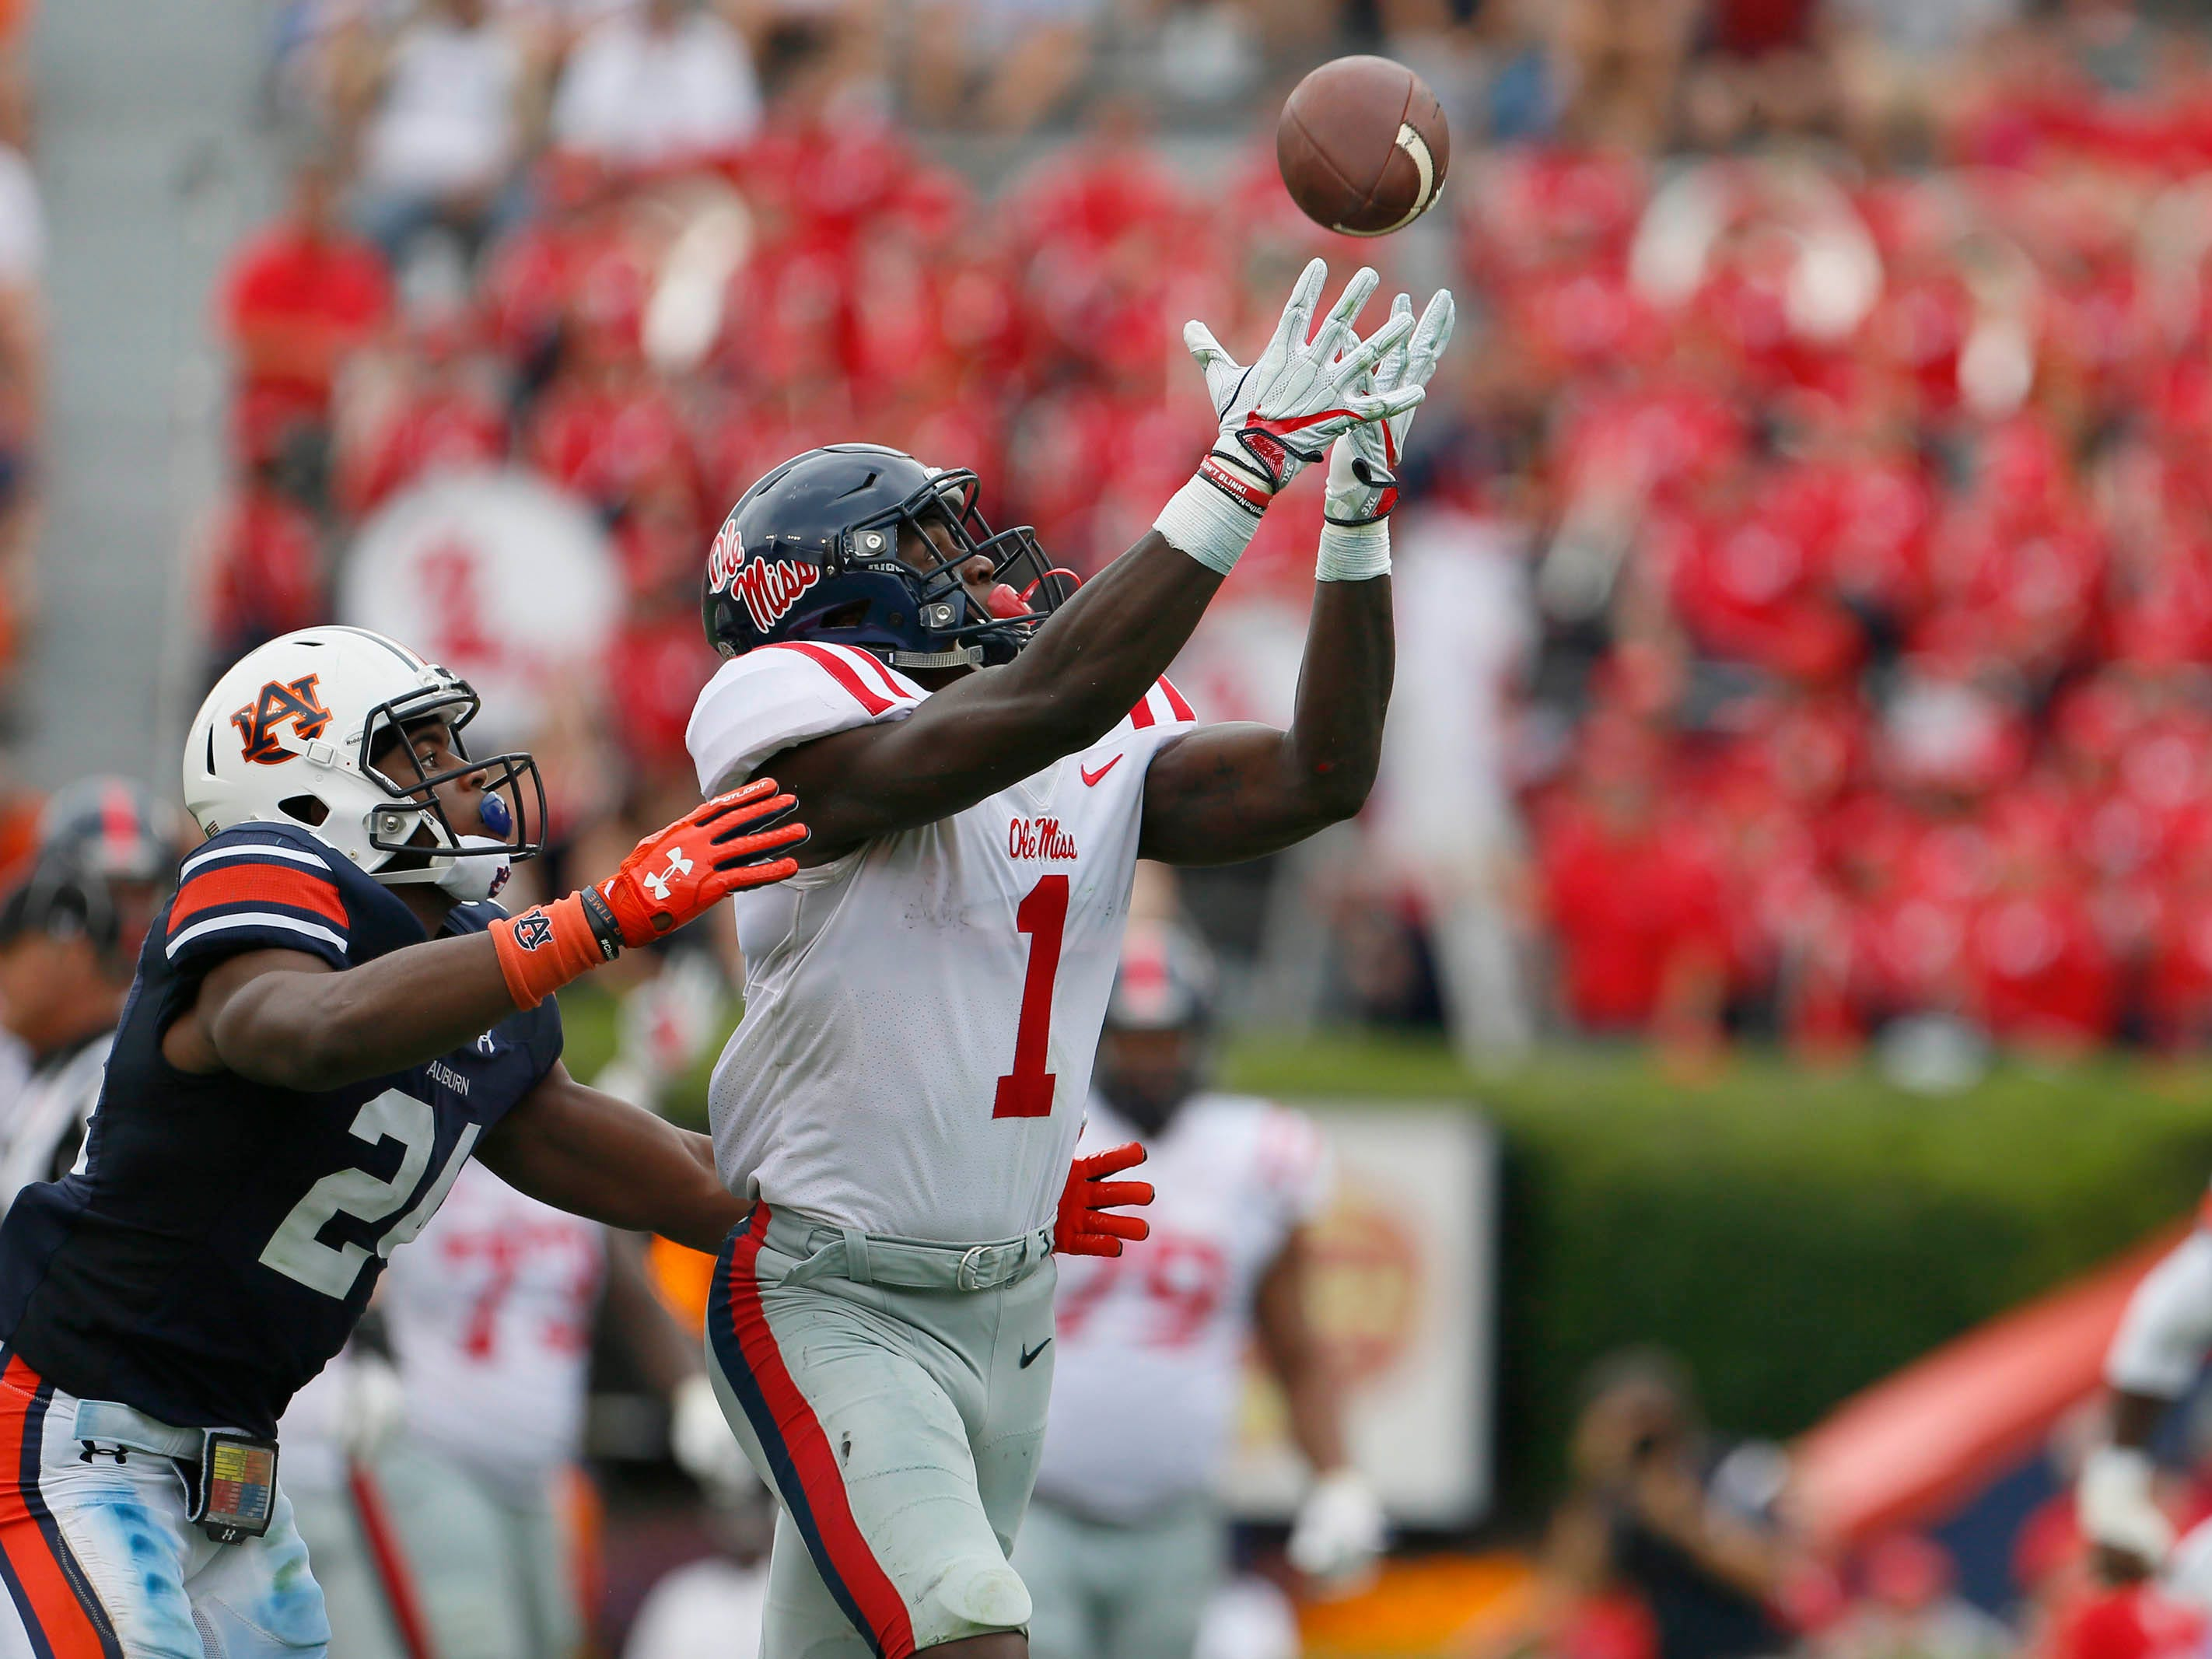 Mississippi receiver A.J. Brown  makes a catch during a game against Auburn at Jordan-Hare Stadium.